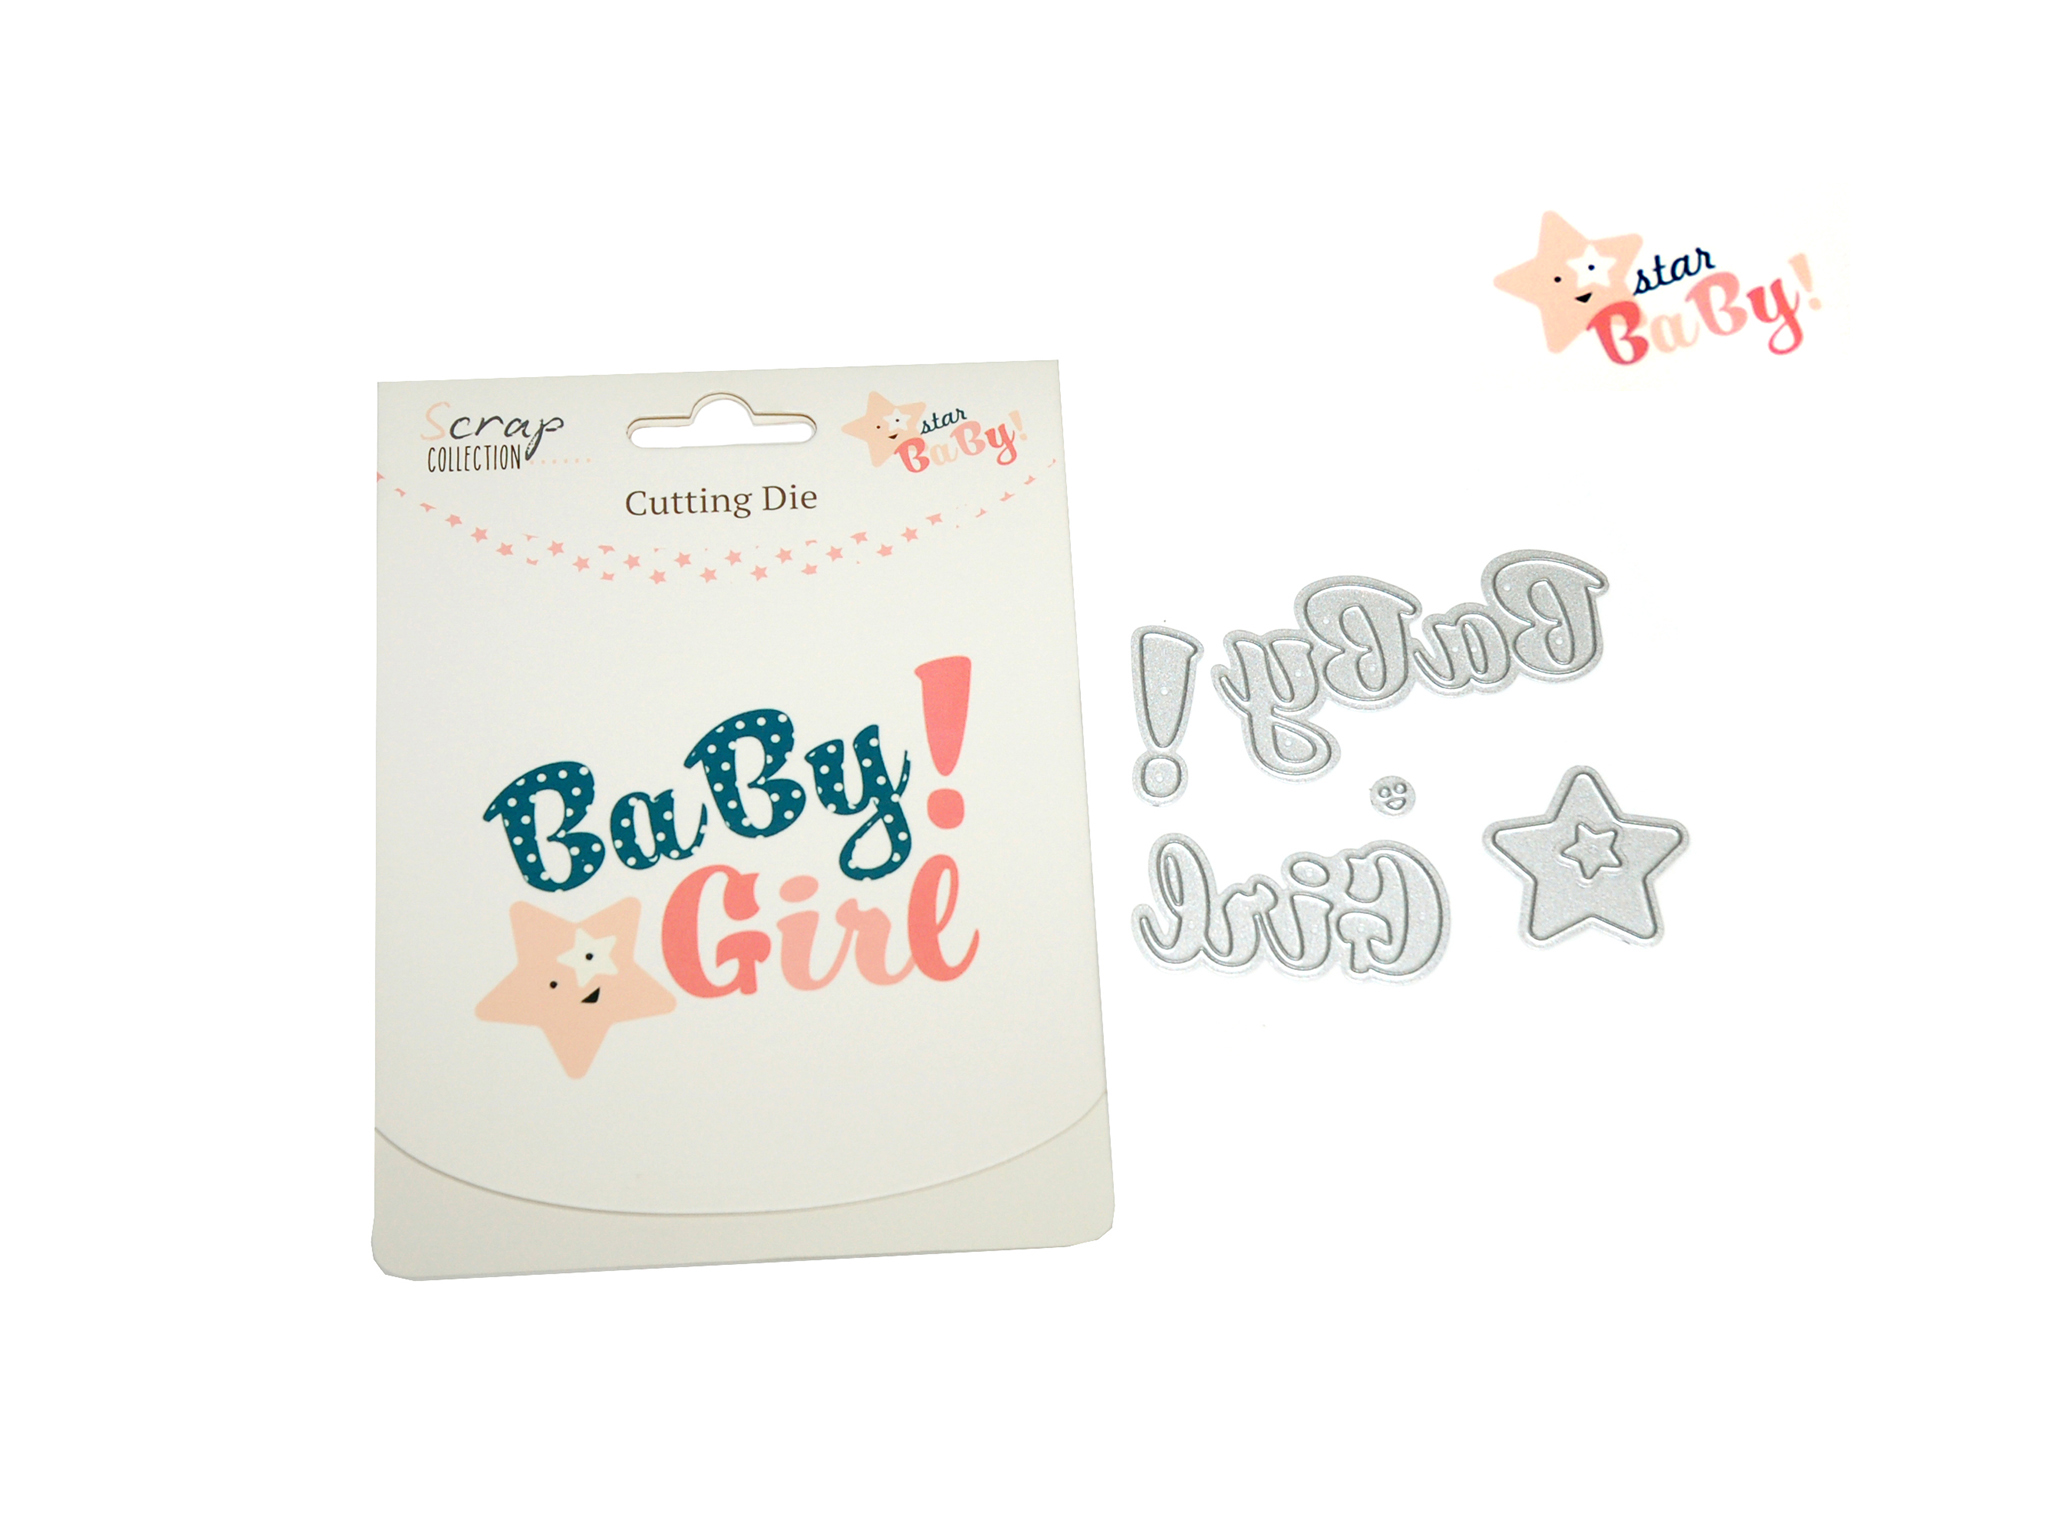 CUTTING DIES STAR BABY GIRL cod. 2501805